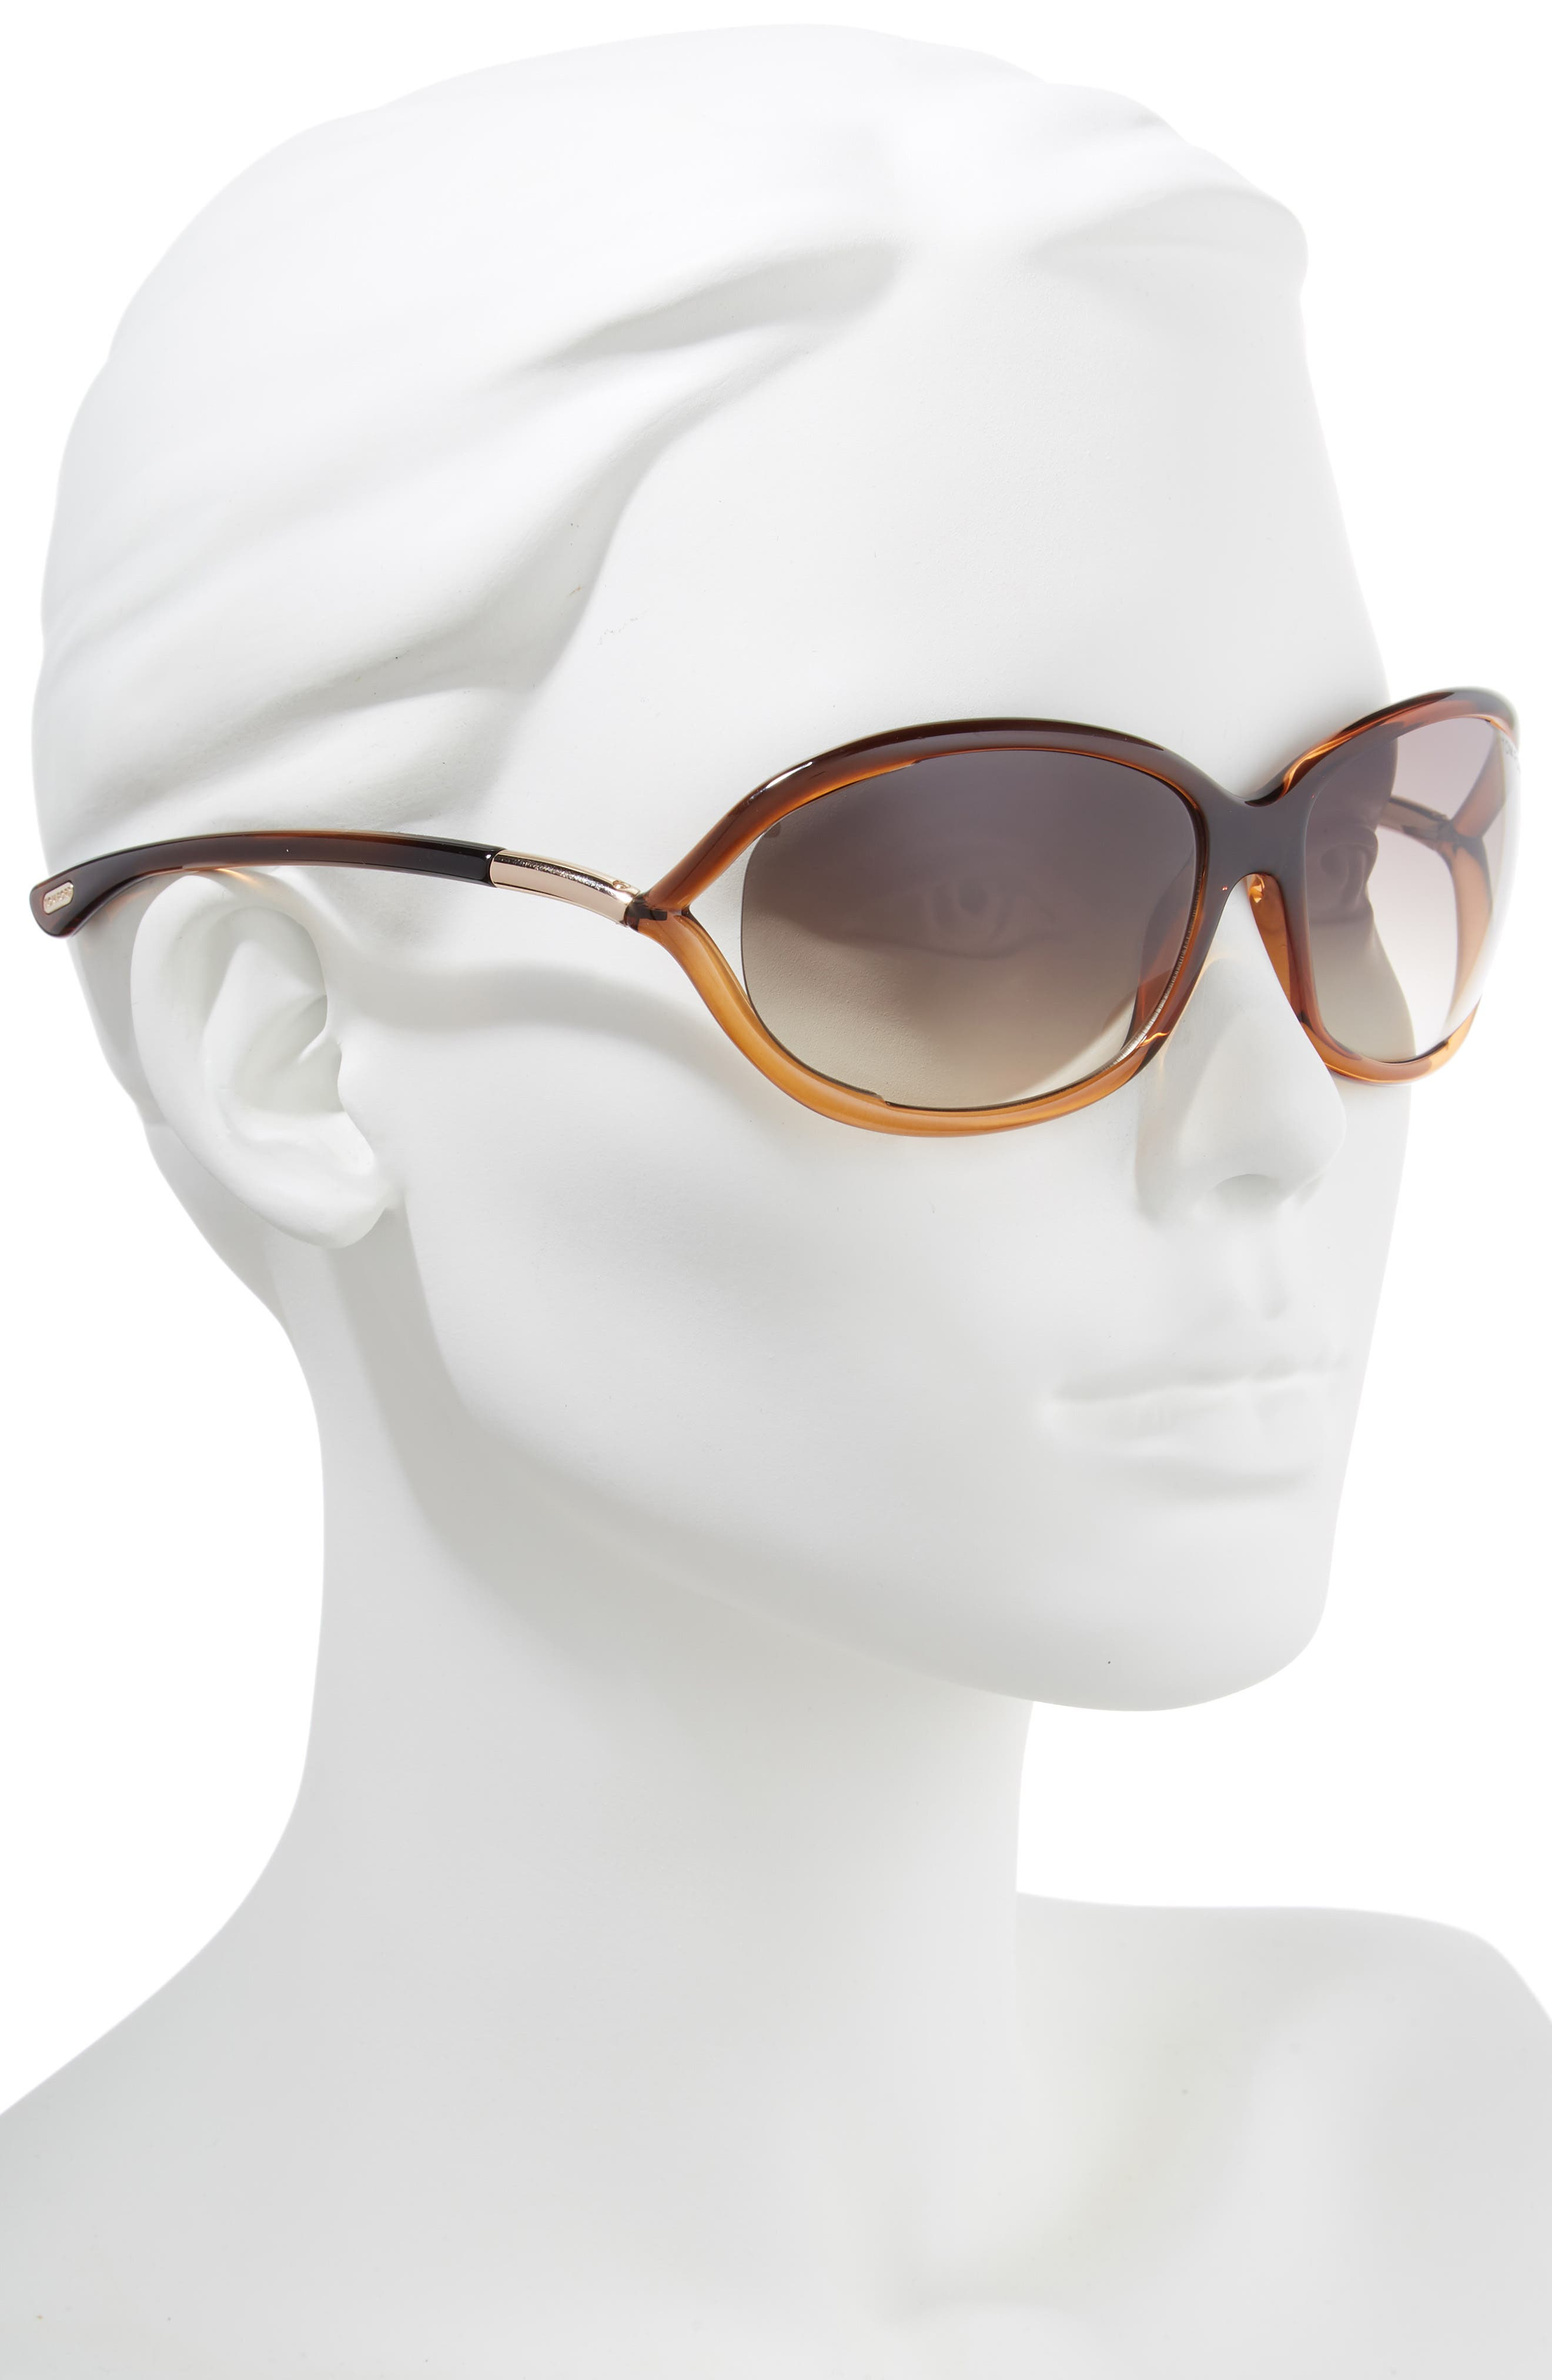 'Jennifer' 61mm Oval Oversize Frame Sunglasses,                             Alternate thumbnail 2, color,                             BROWN GRADIENT/ LIGHT ORANGE